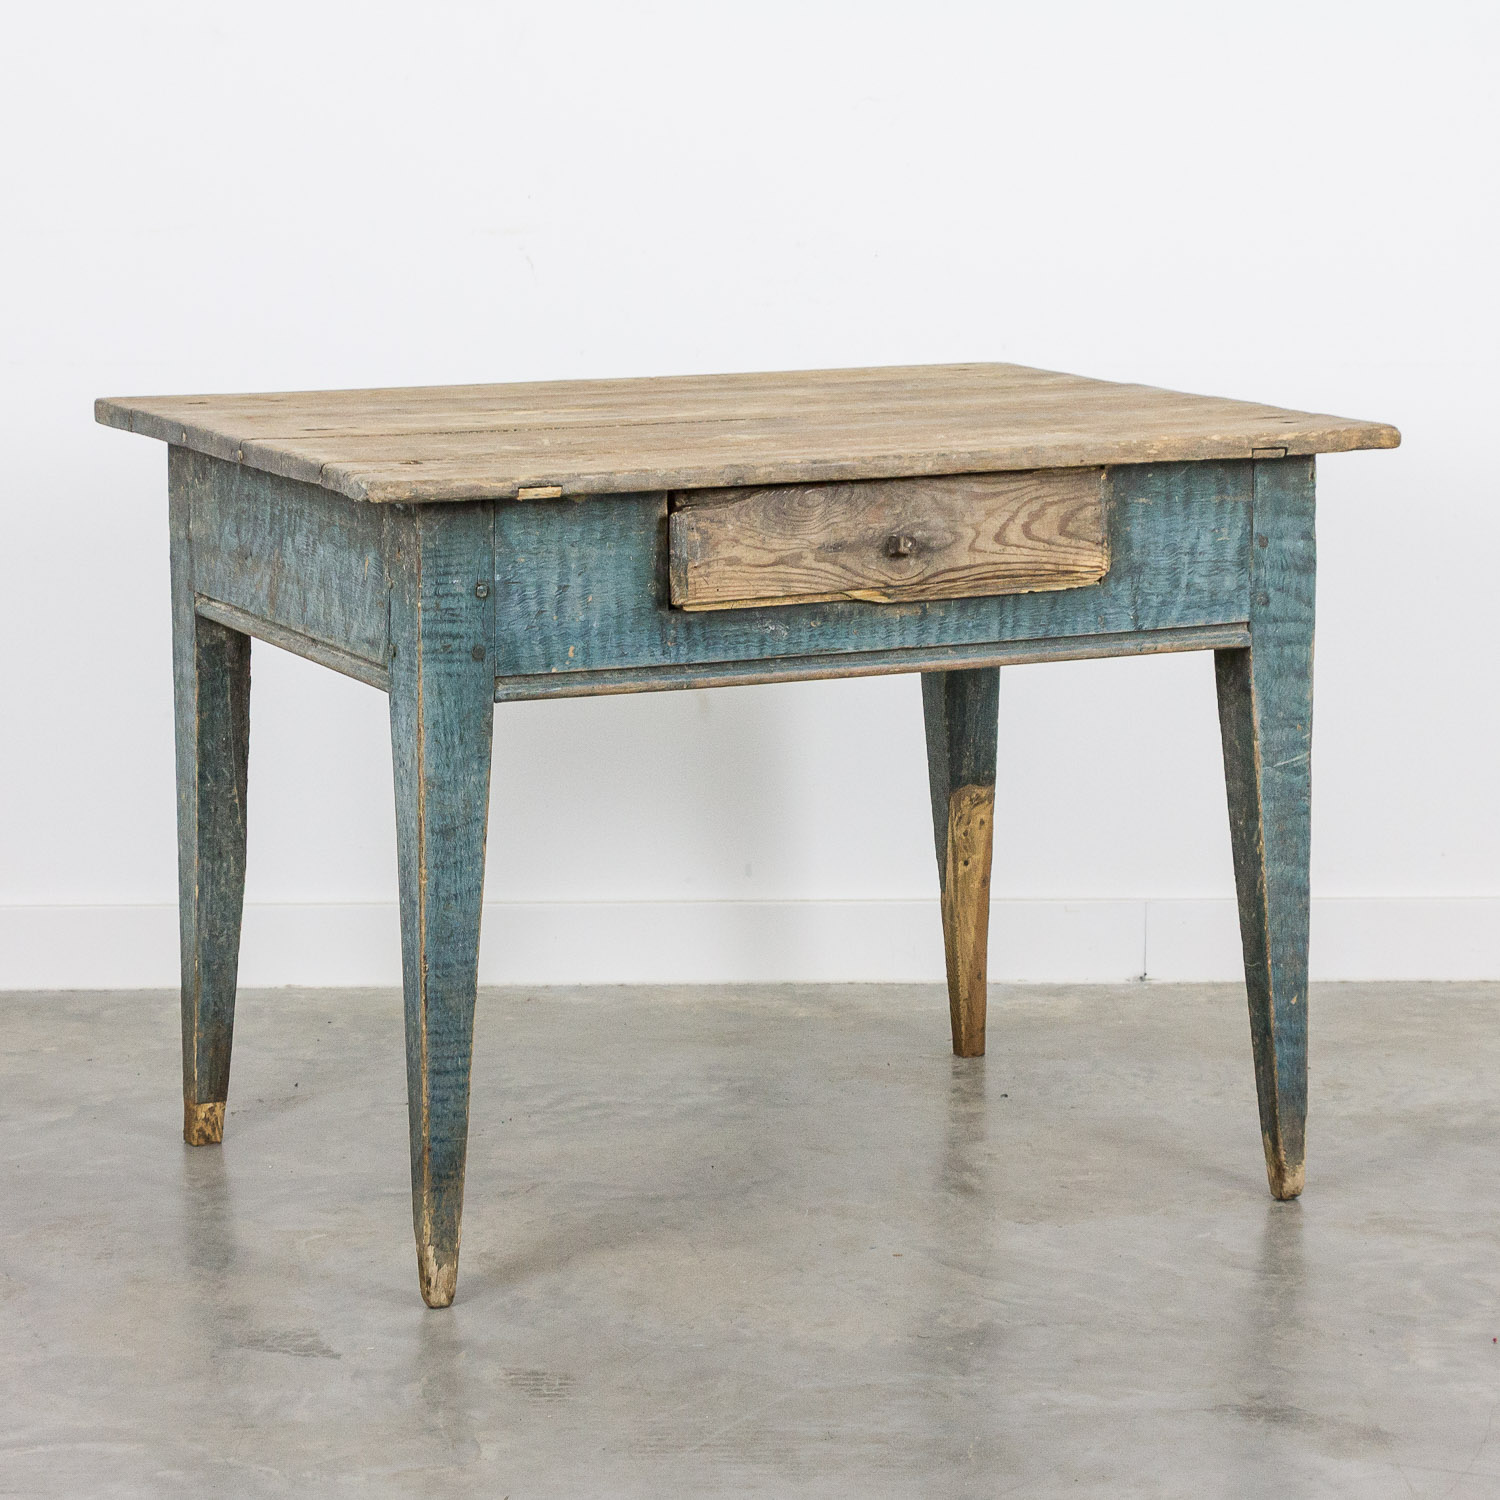 Swedish farmhouse table 19th Century